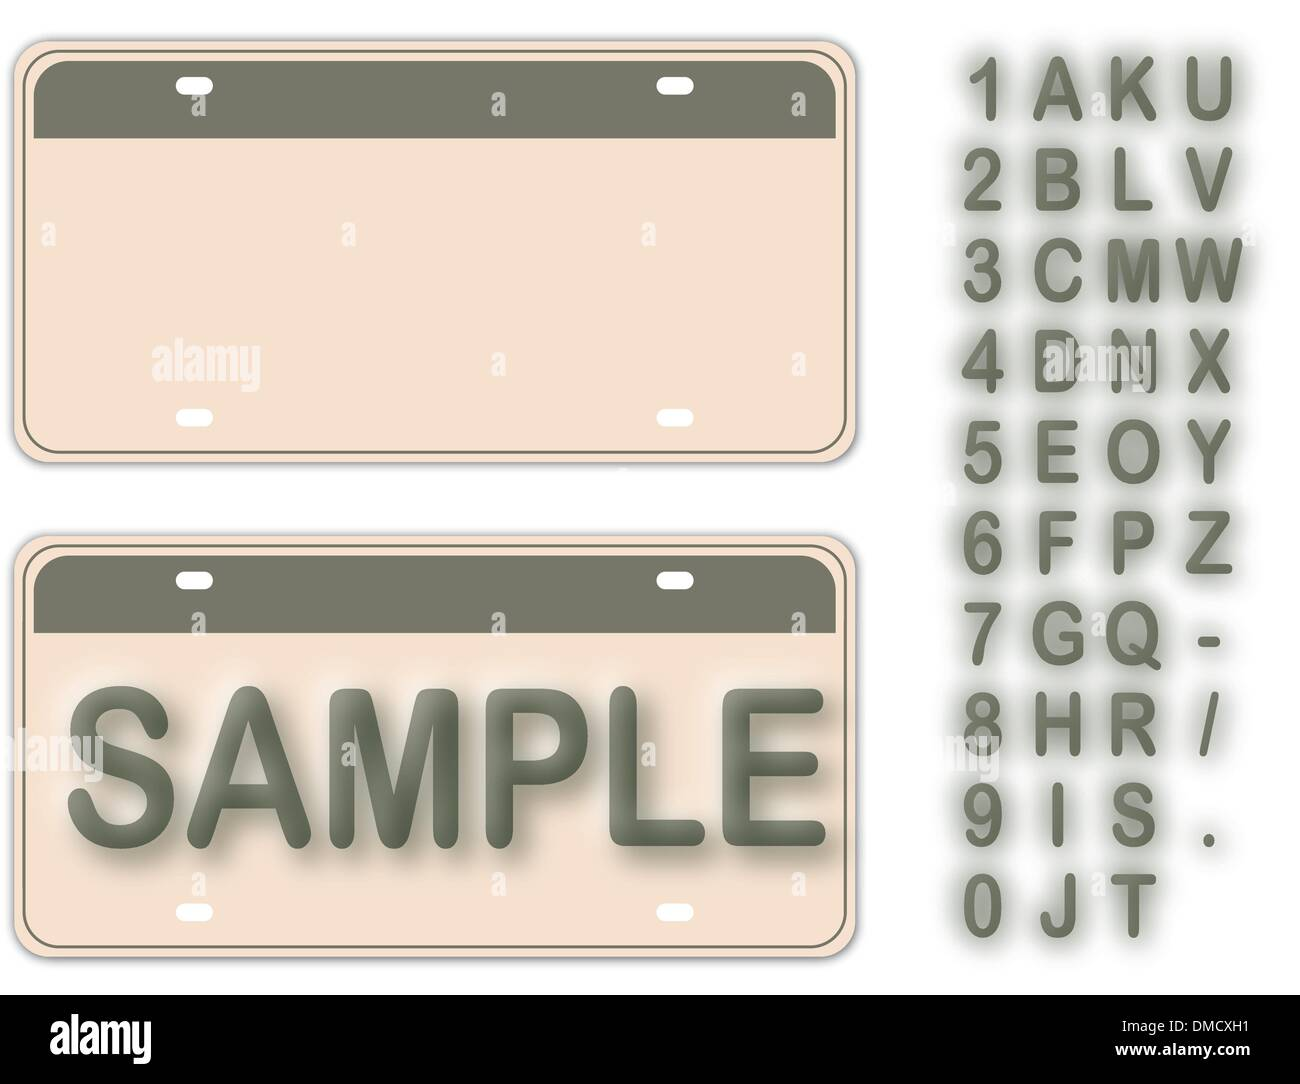 Empty License Plate With Editable Live Texts (See Also Image ID: Stock Vector